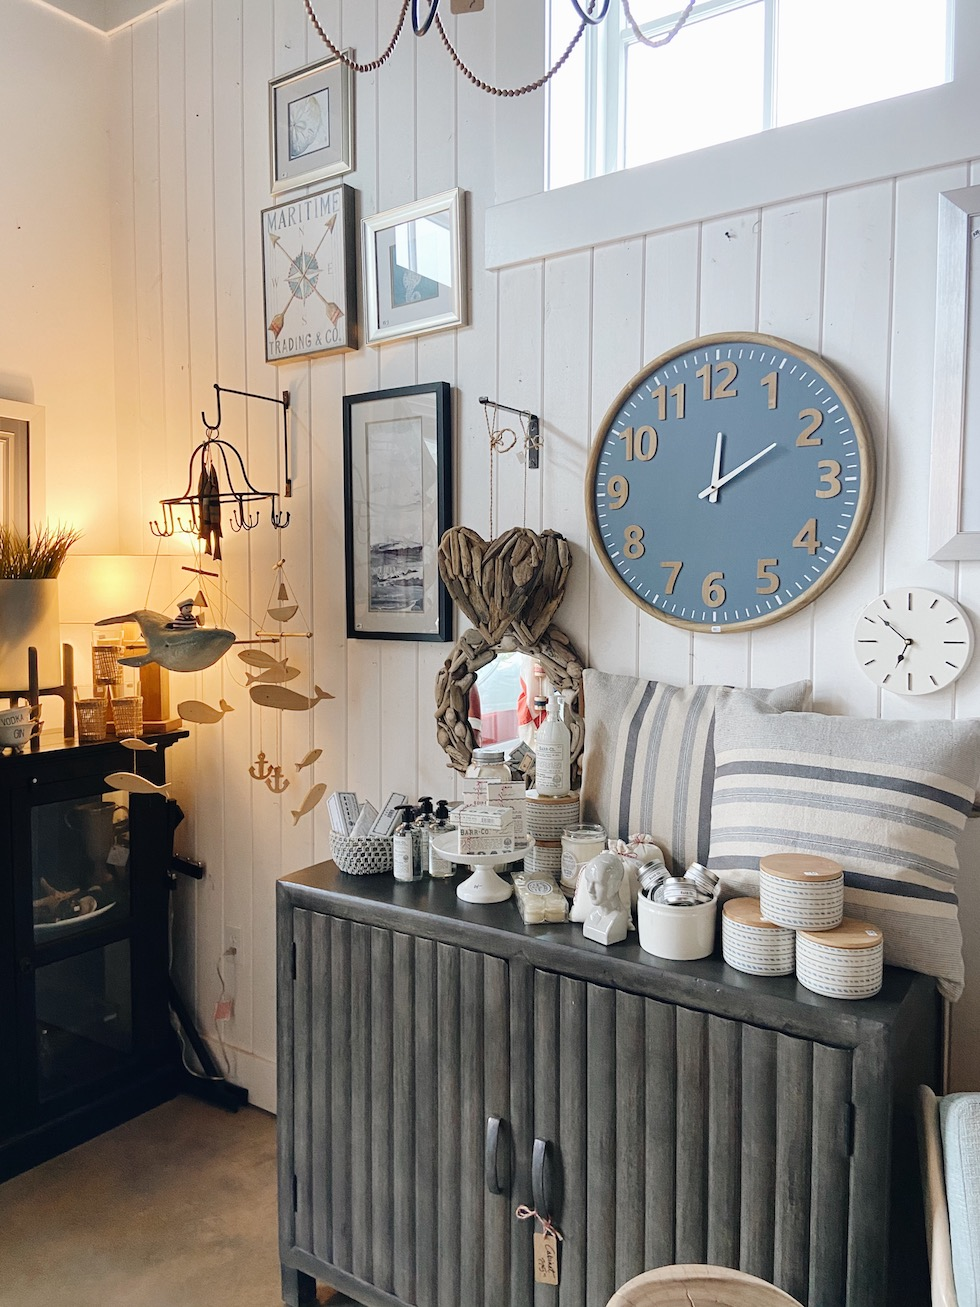 To see: Seaworthy Home Shop at Seabrook